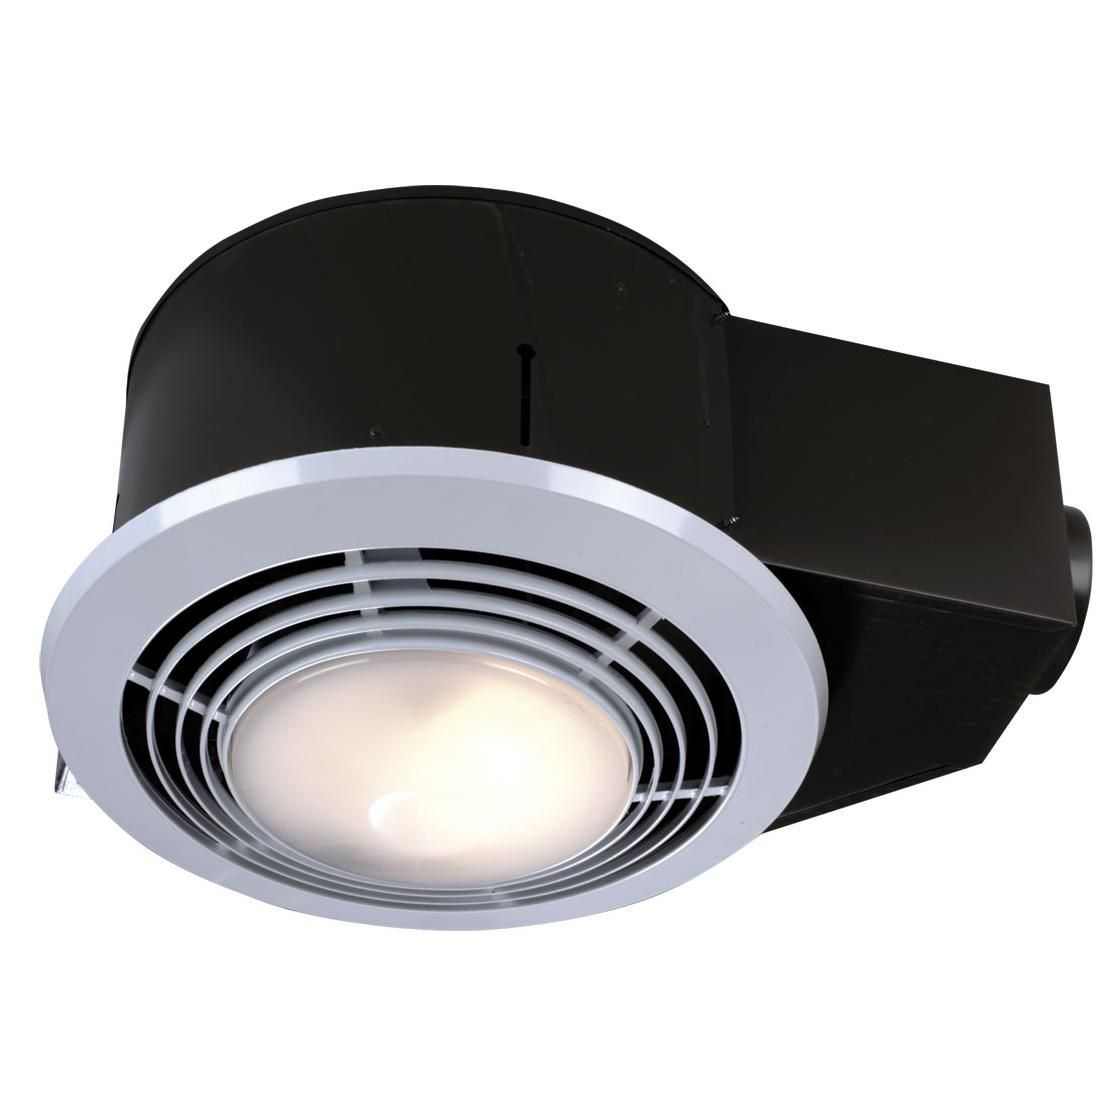 bathroom fan light bathroom fan light bulb bathroom fan Bathroom Exhaust Fan Light Combo Bathroom Exhaust Fans with Light